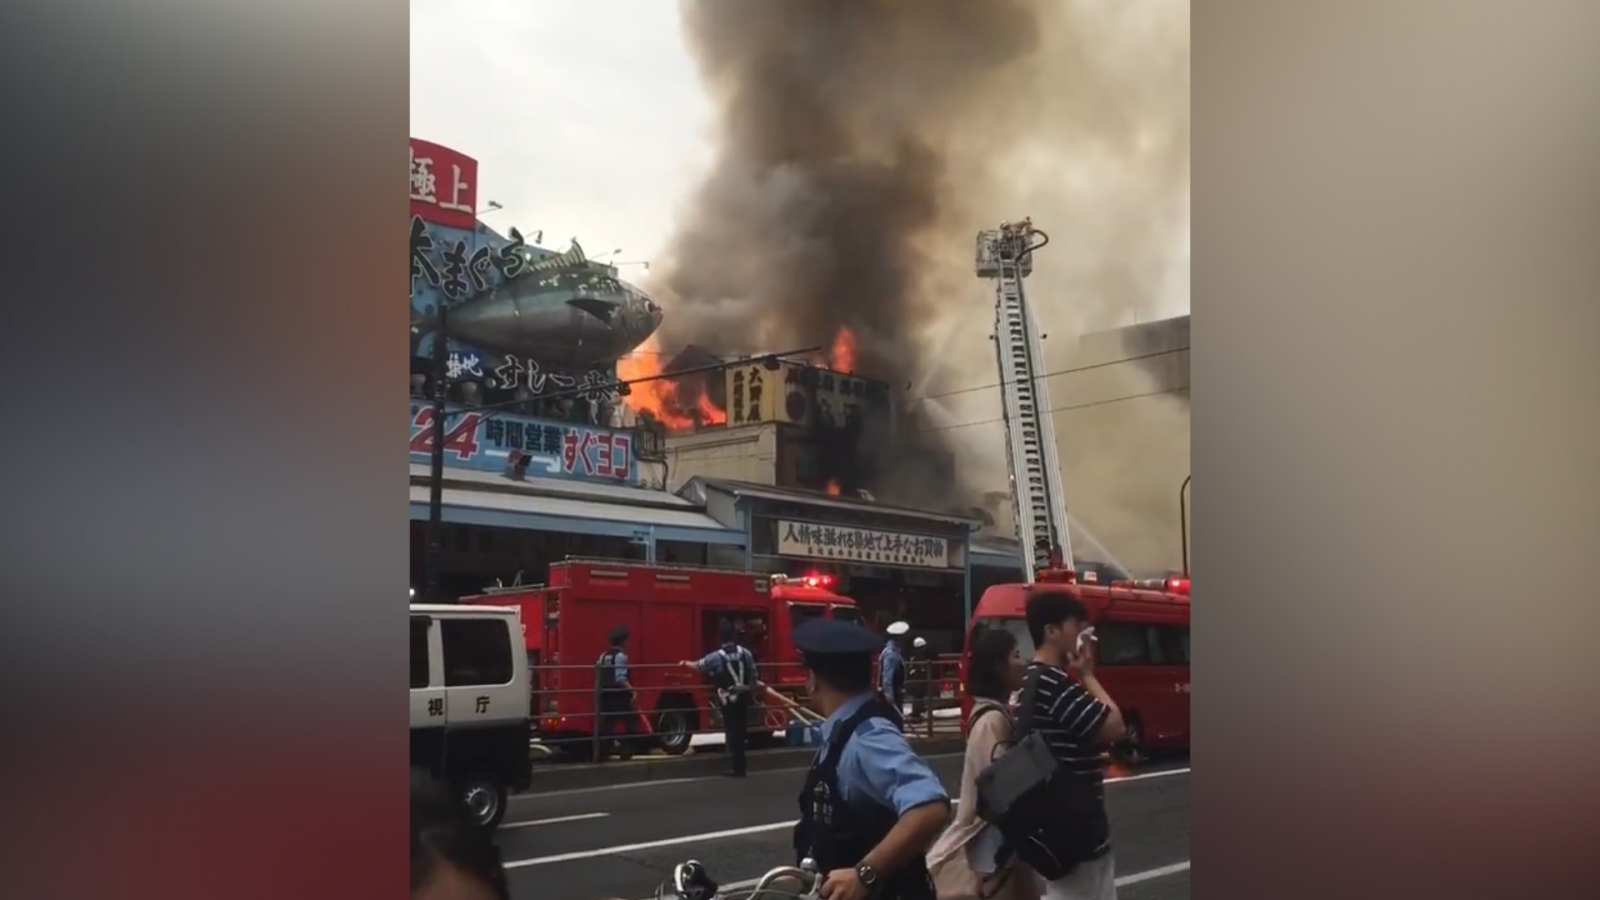 Huge Fire Breaks Out at Tsukiji Fish Market in Tokyo